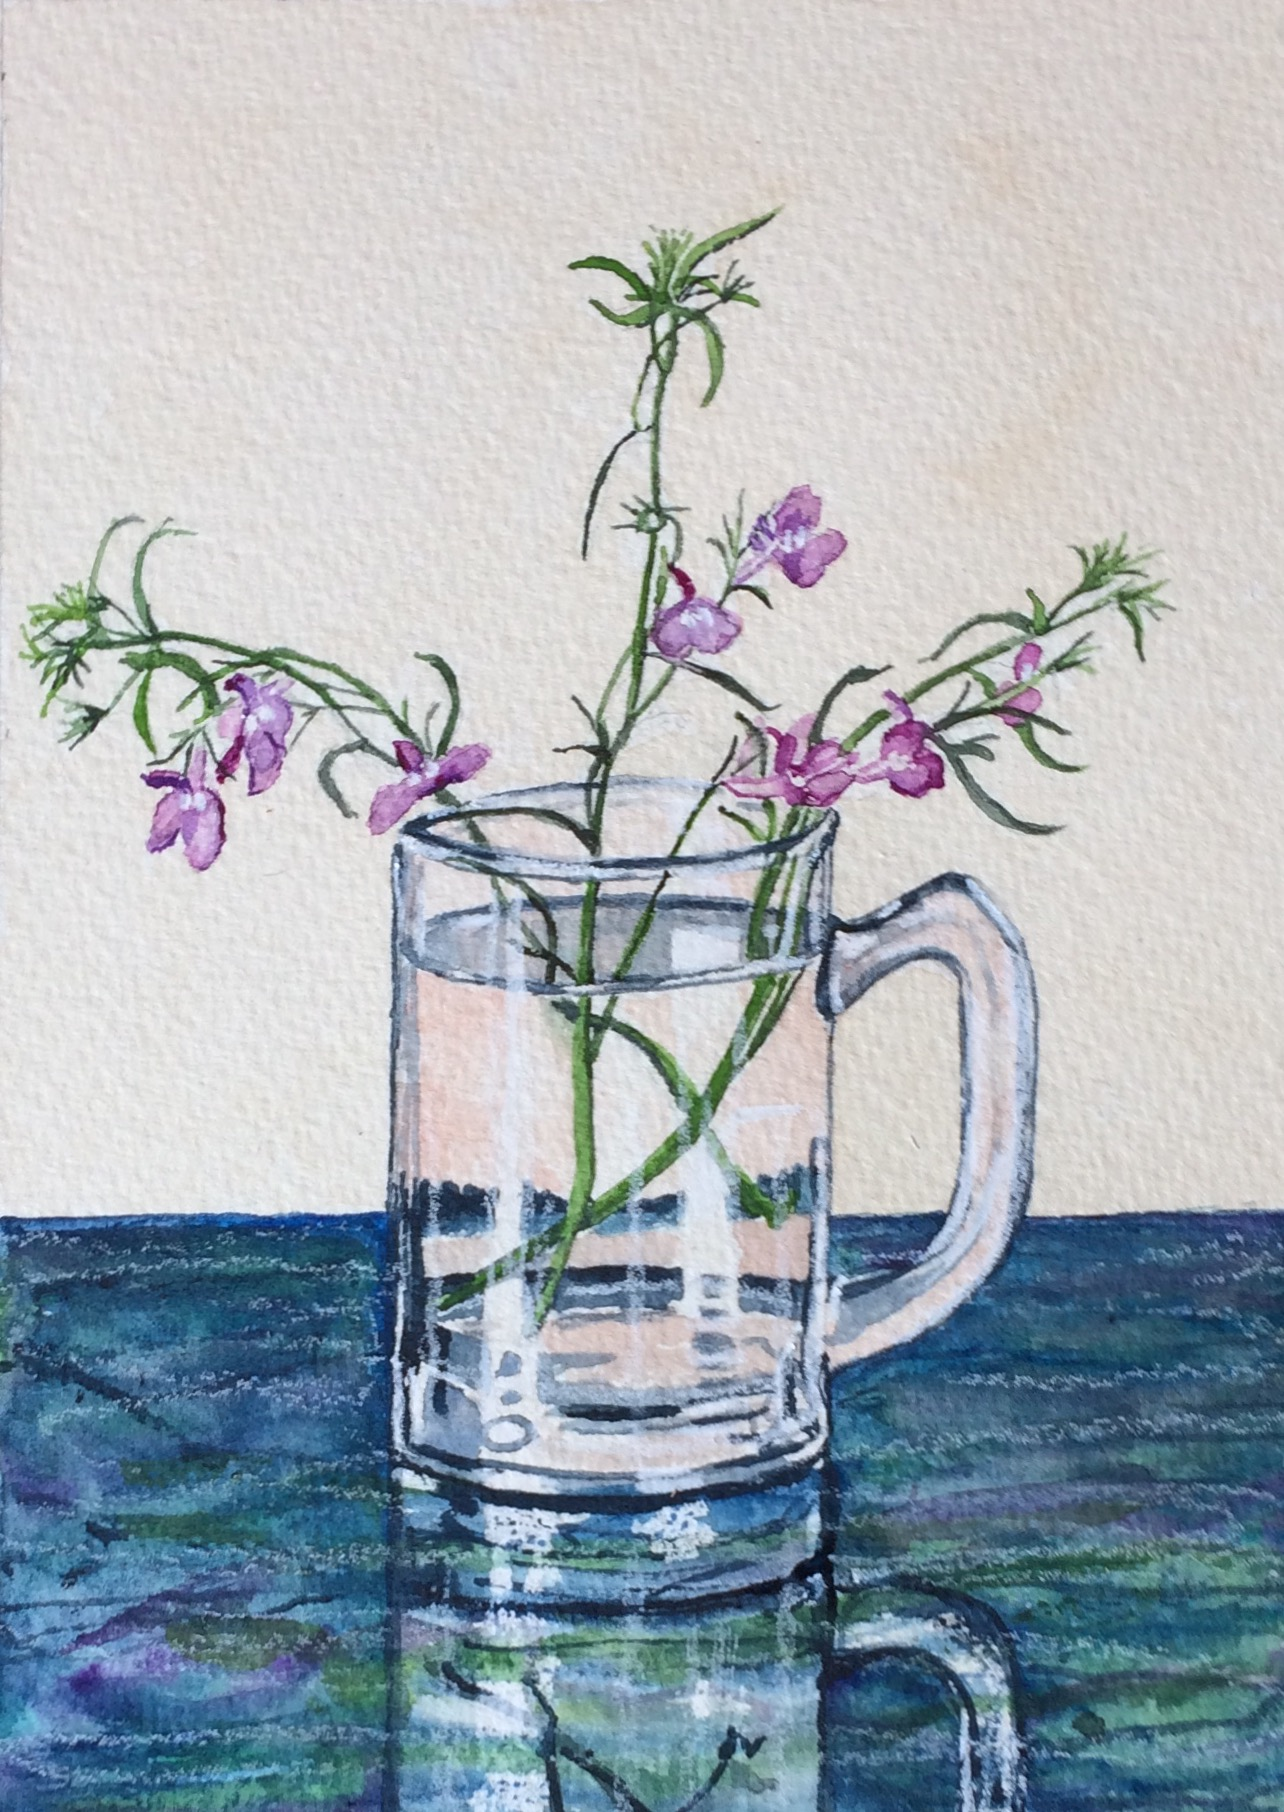 Lobelia in mini beer mug